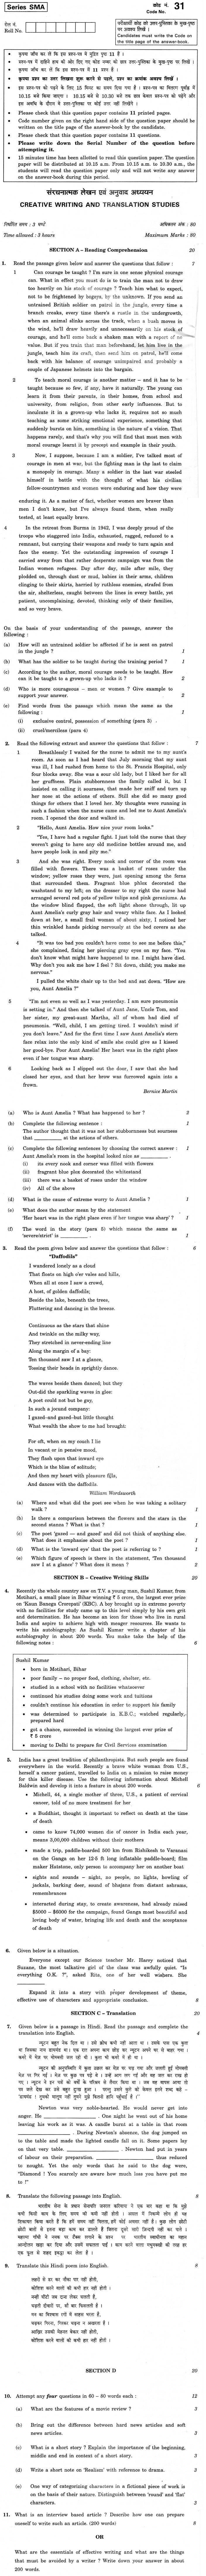 CBSE Class XII Previous Year Question Paper 2012 Creative Writing and Translation Studies